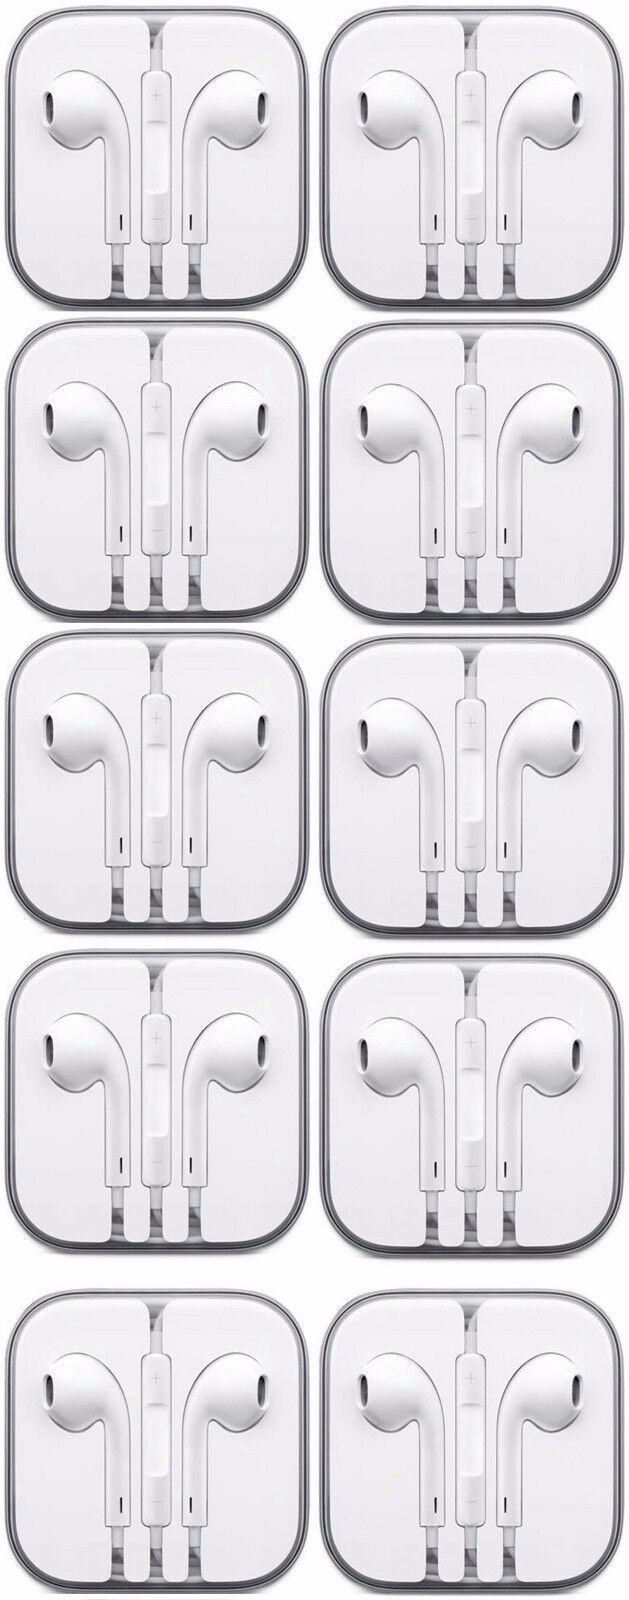 Lot of 10 Earbuds Earphone Headset With Mic For Apple iPhone